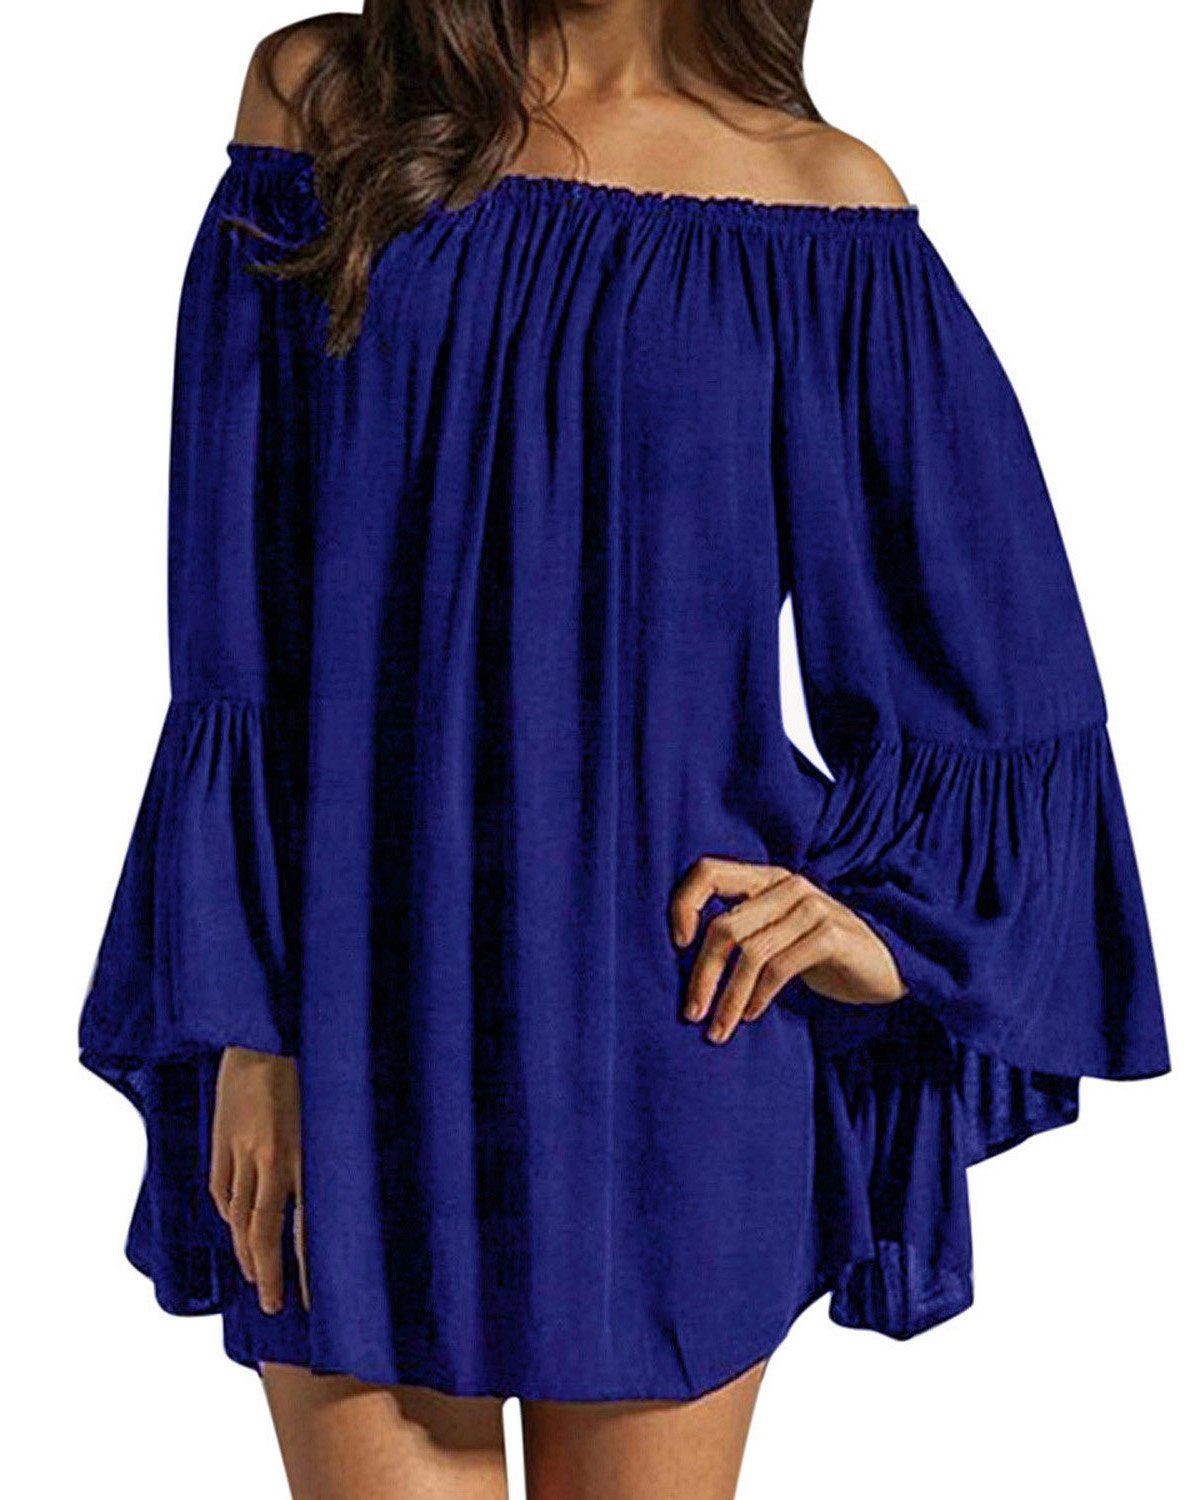 Sexy Ruffle Sleeve Off-Shoulder Chiffon Blue Chemise - DeluxeAdultCostumes.com